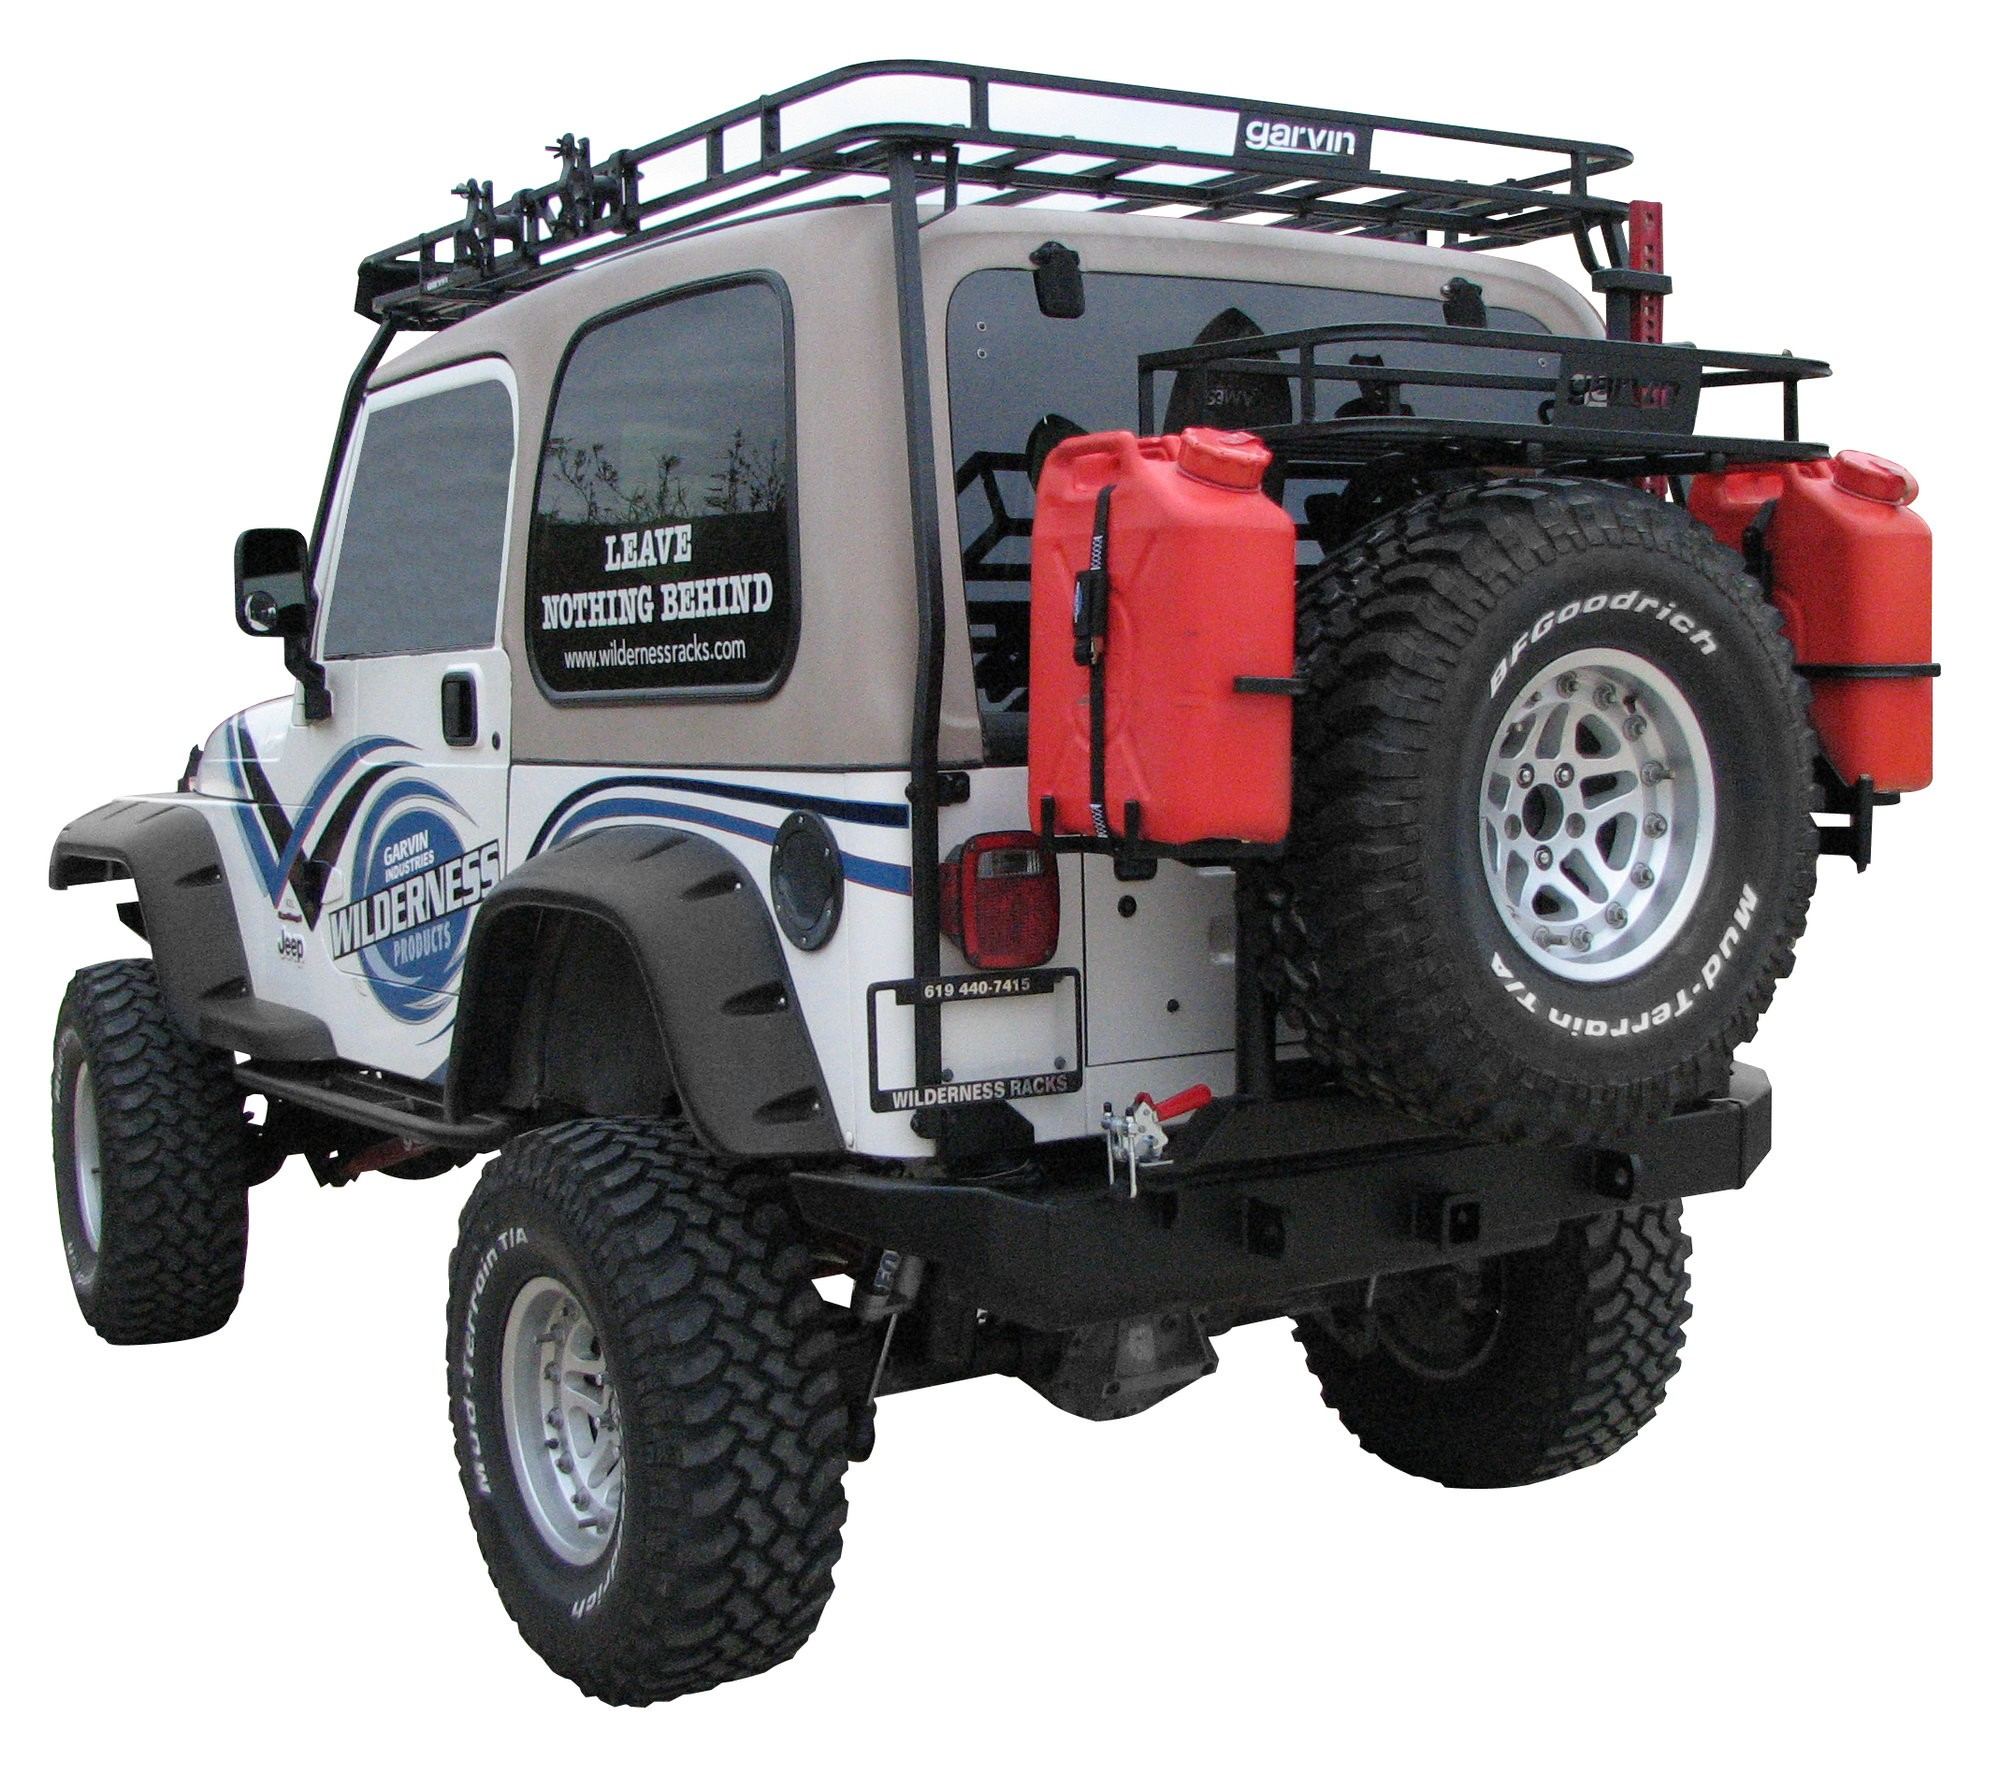 Garvin G2 Series Rear Bumper With Swing Out Tire Carrier For 97 06 Jeep  Wrangler TJ